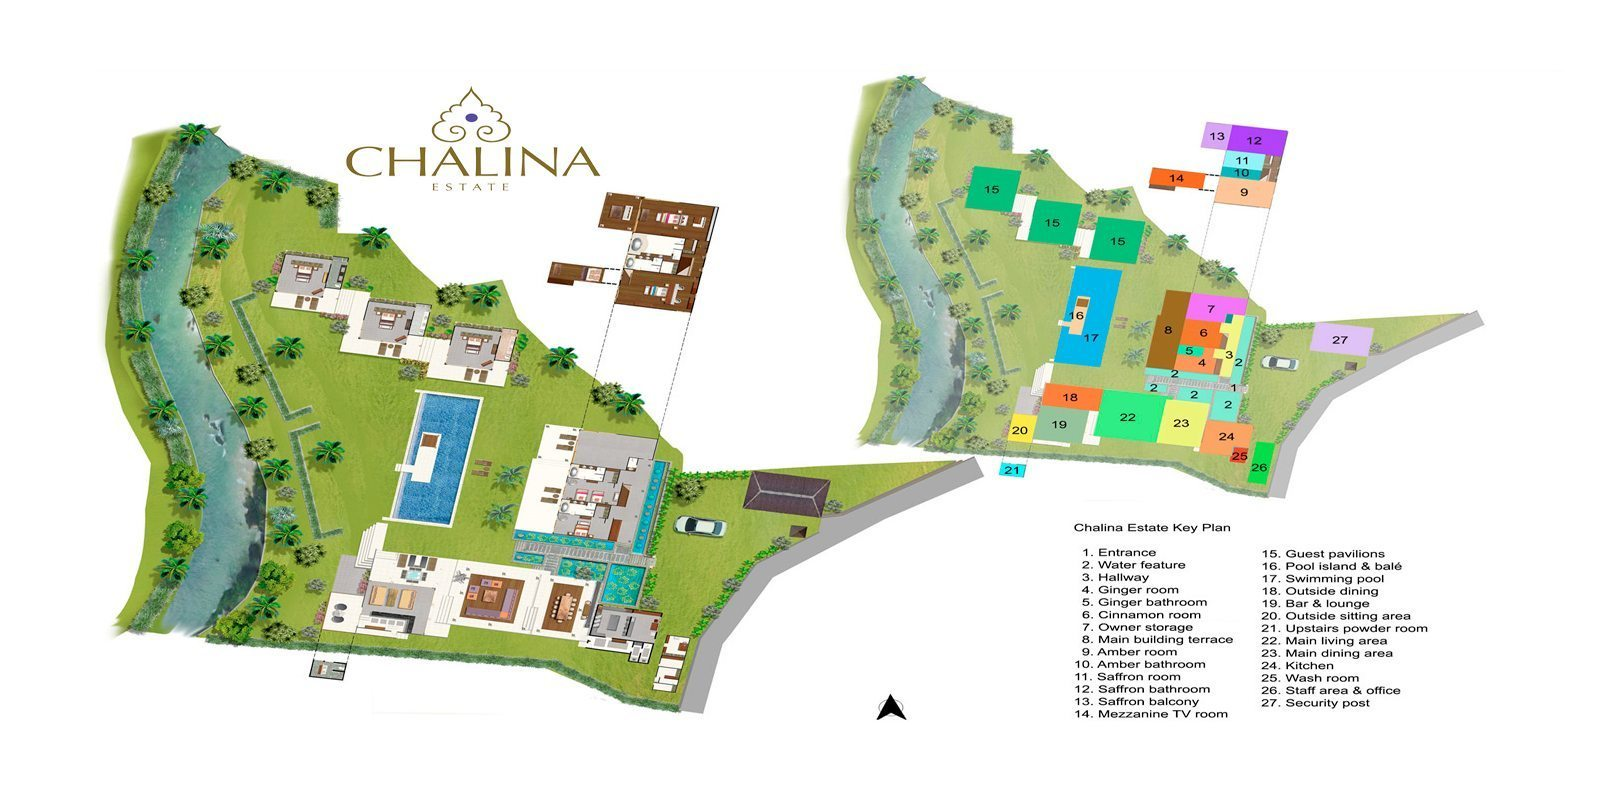 Chalina Estate Floorplan | Canggu, Bali